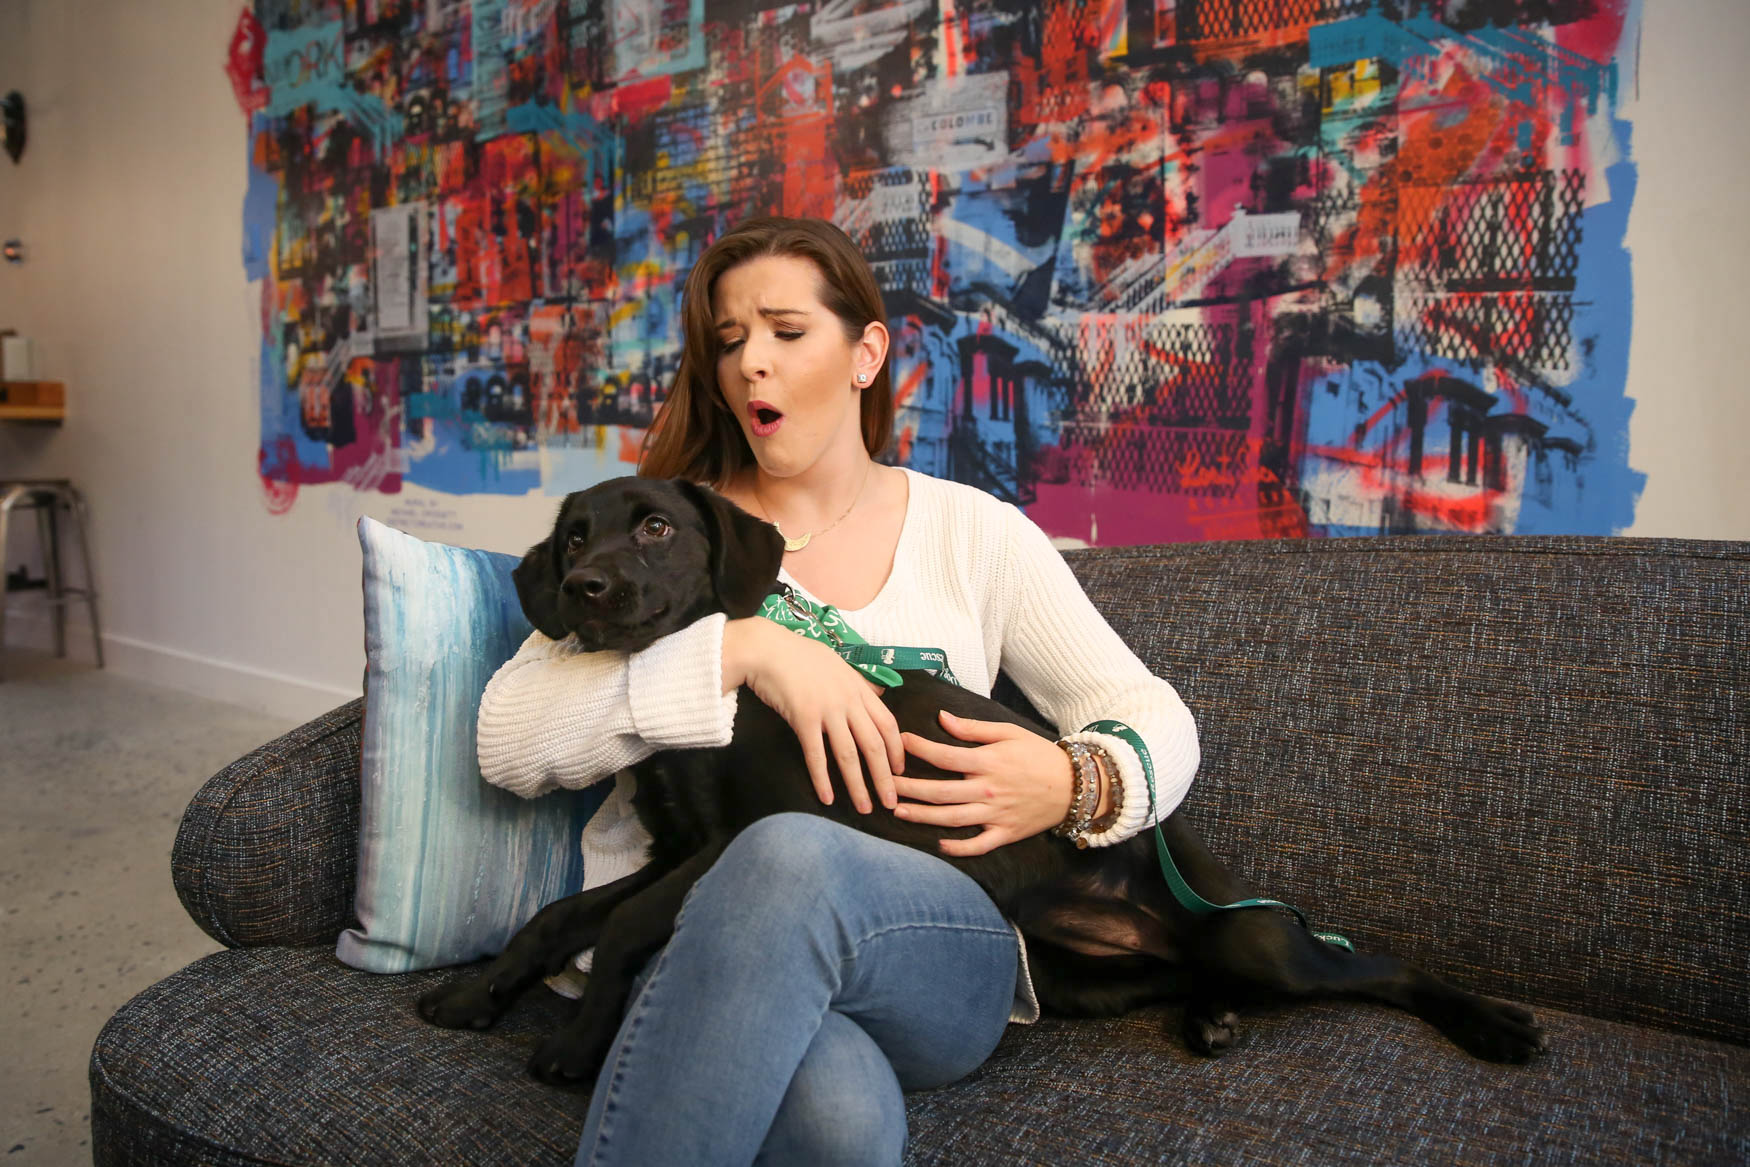 By now, you've probably seen our photos of D.C.'s most eligible bachelorettes and adoptable dogs. However, not every photo makes the cut - usually because the dogs decide to ham it up! Here are some of our cutest outtakes from our photo shoot. (Amanda Andrade-Rhoades/DC Refined)